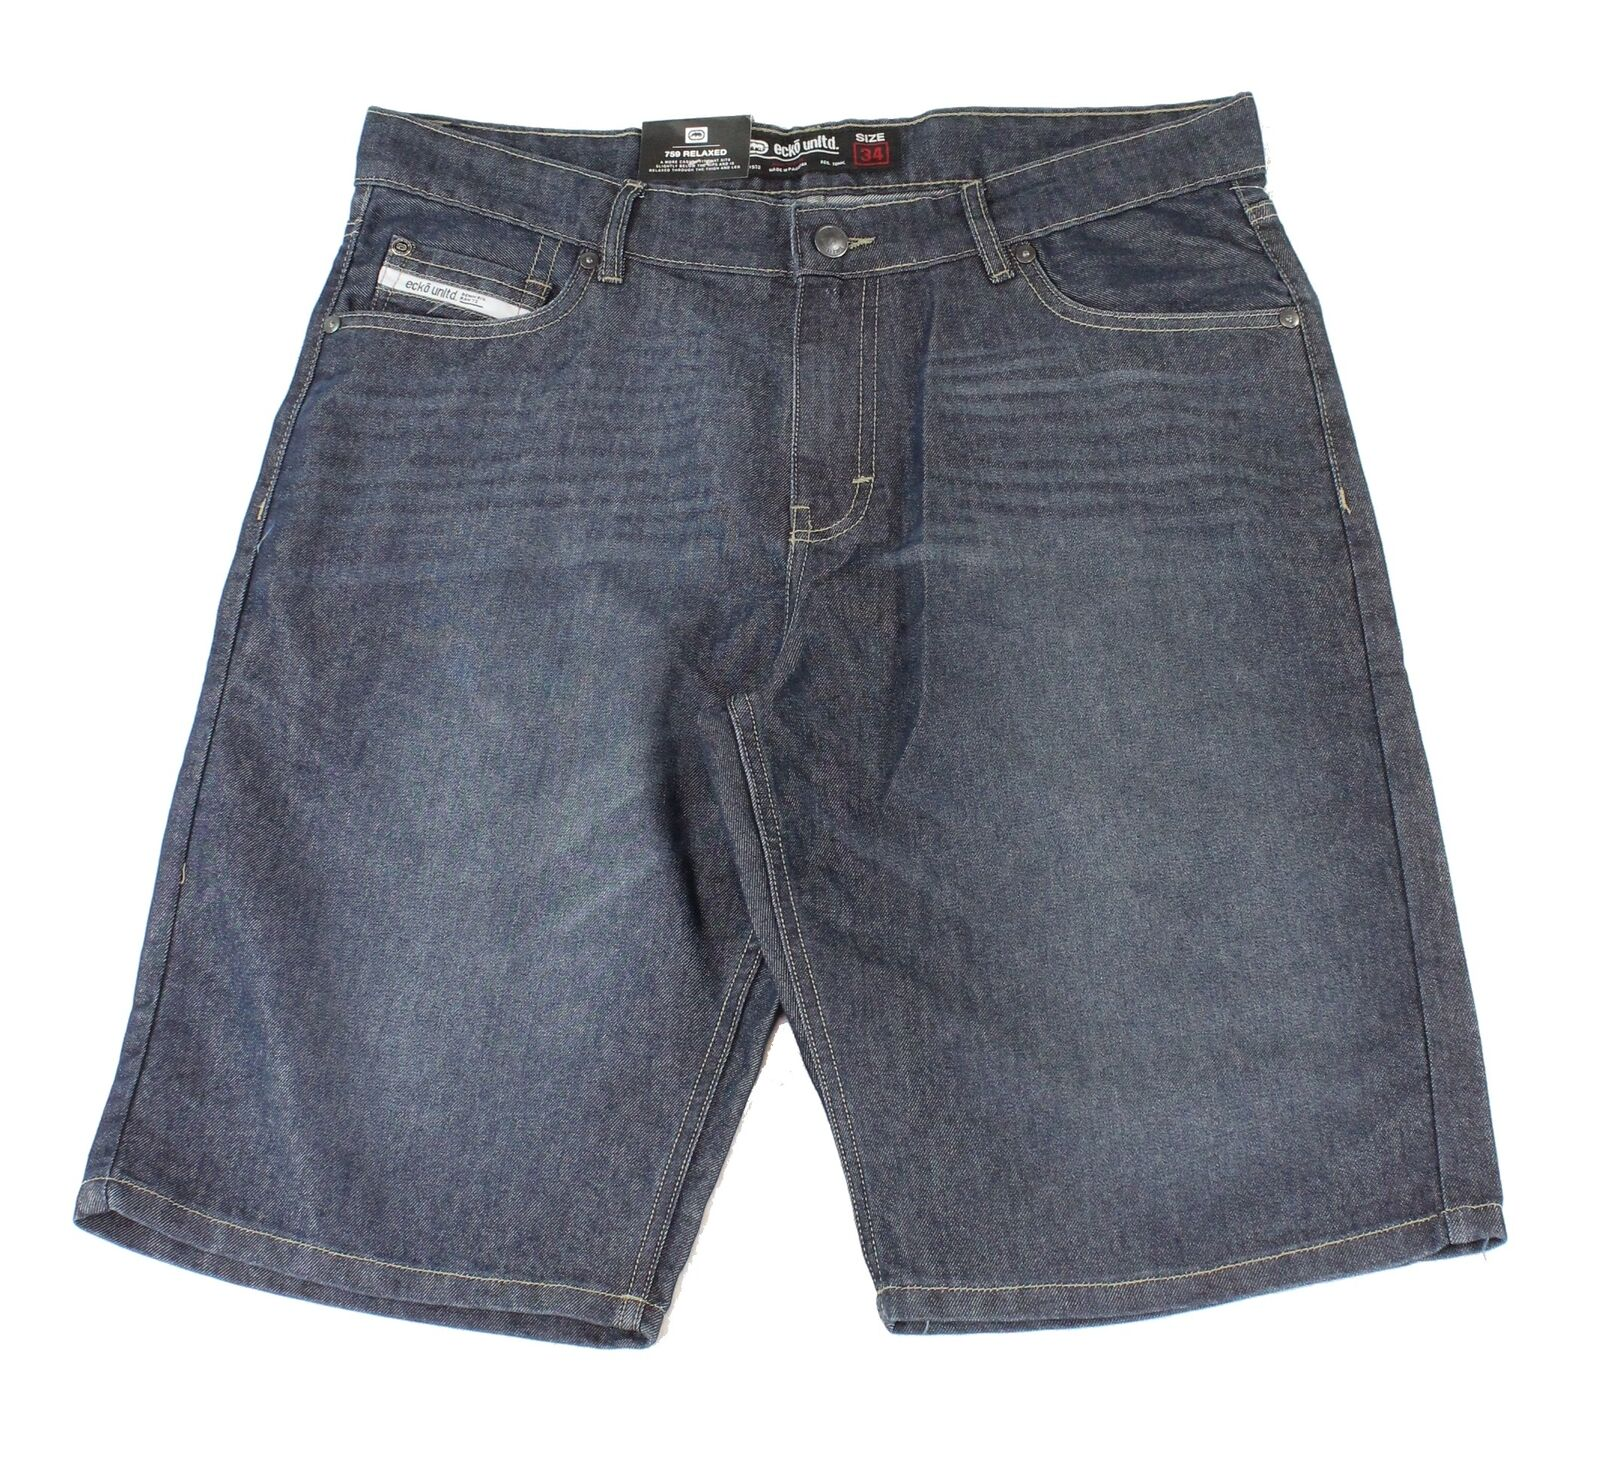 Ecko-Unltd-Mens-Shorts-Indigo-Blue-Size-36-Denim-759-Relaxed-Fit-48-106